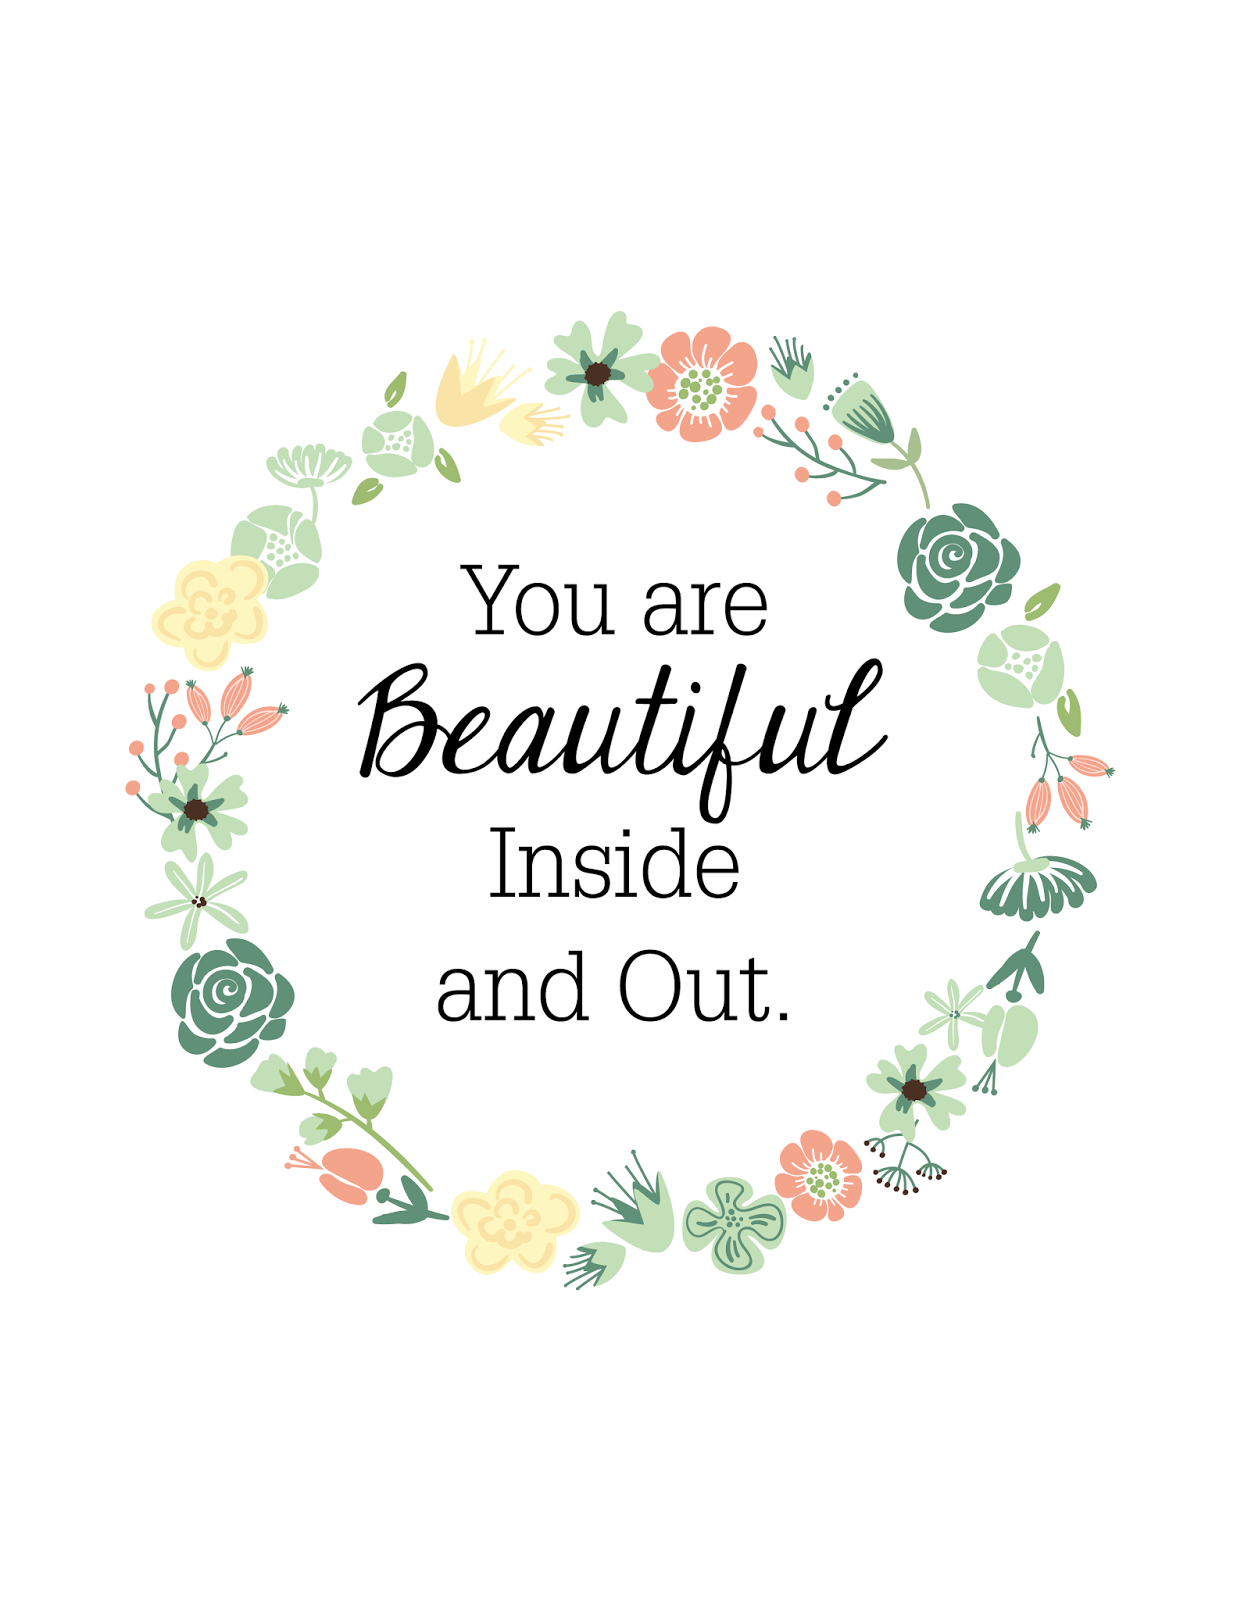 4 Amazing Compliments To Give Or Receive  You are beautiful